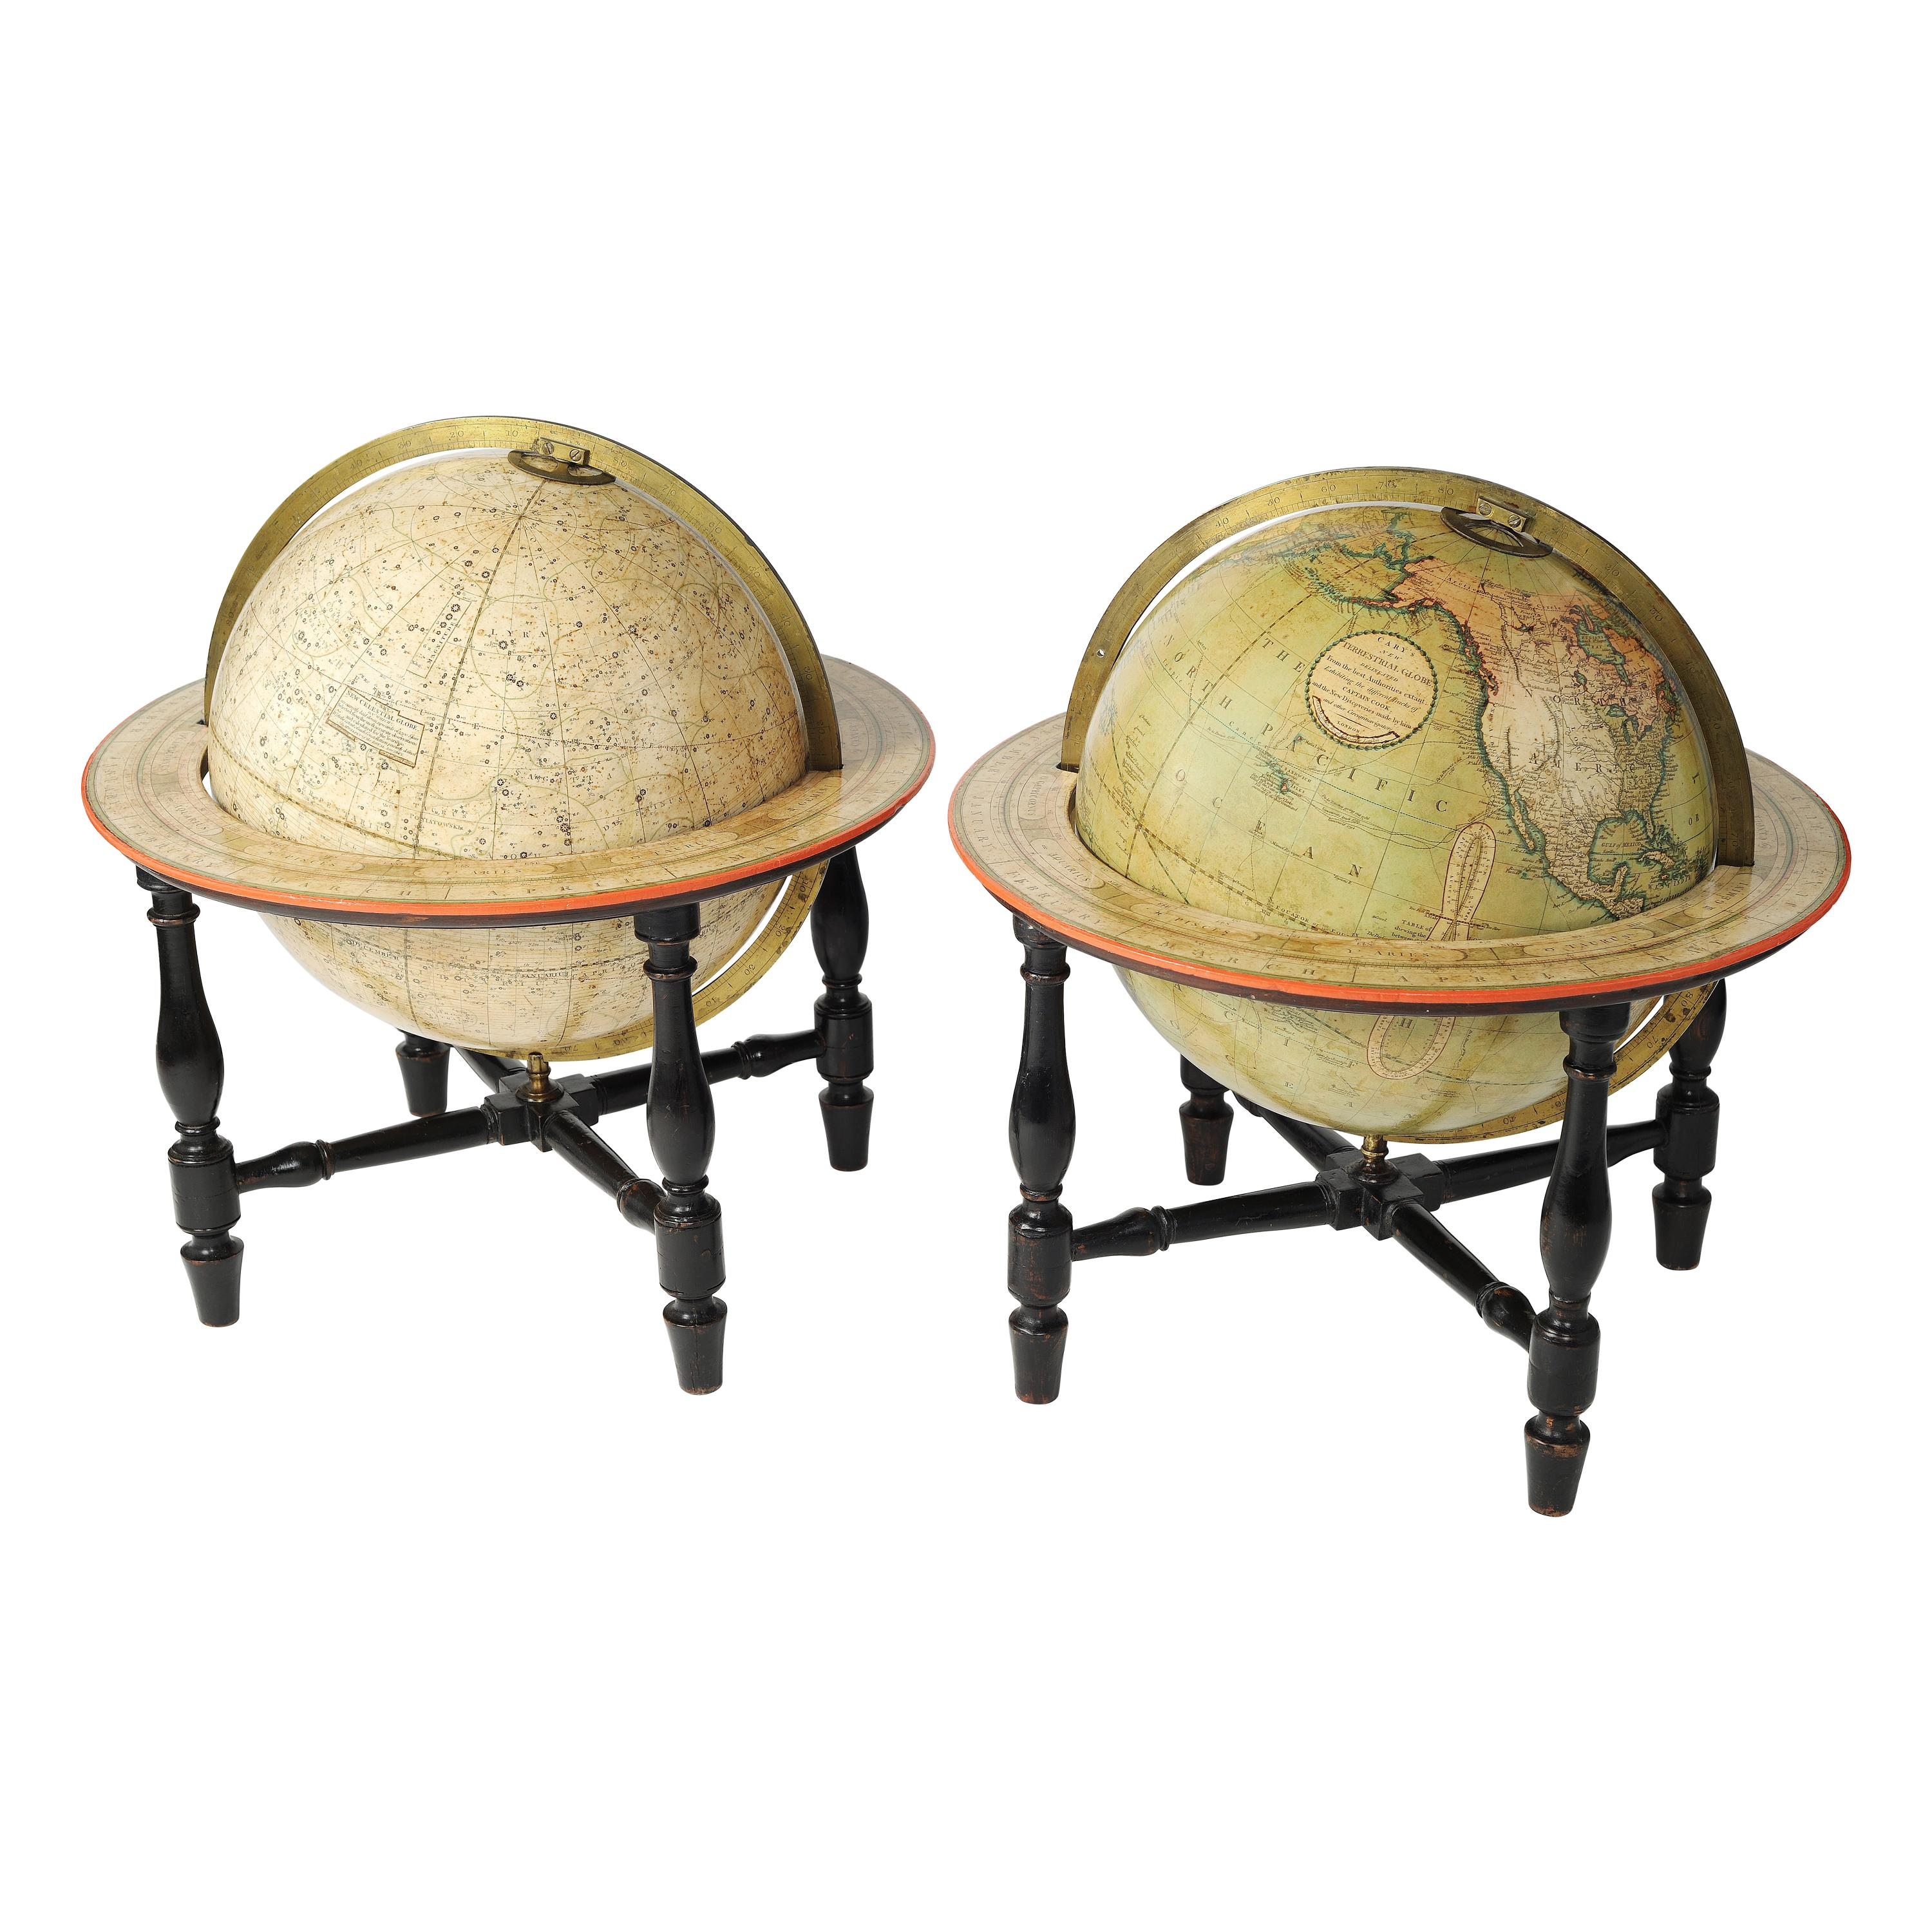 18th Century Pair of English Globes by Cary, 1798 and 1800